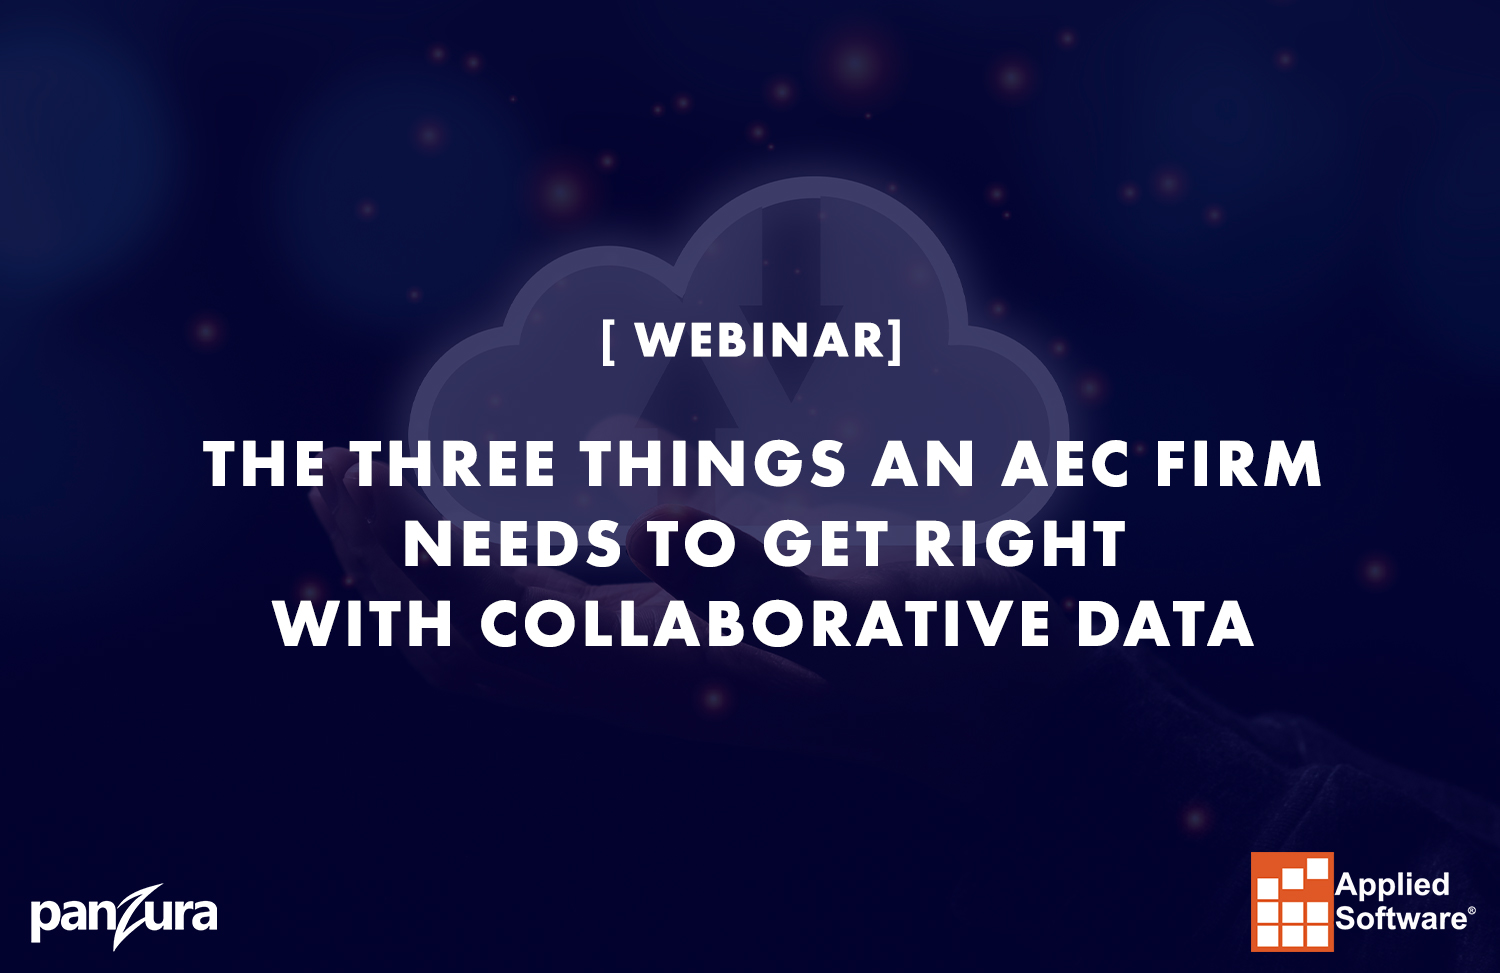 The Three Things an AEC Firm Needs to Get Right with Collaborative Data-2